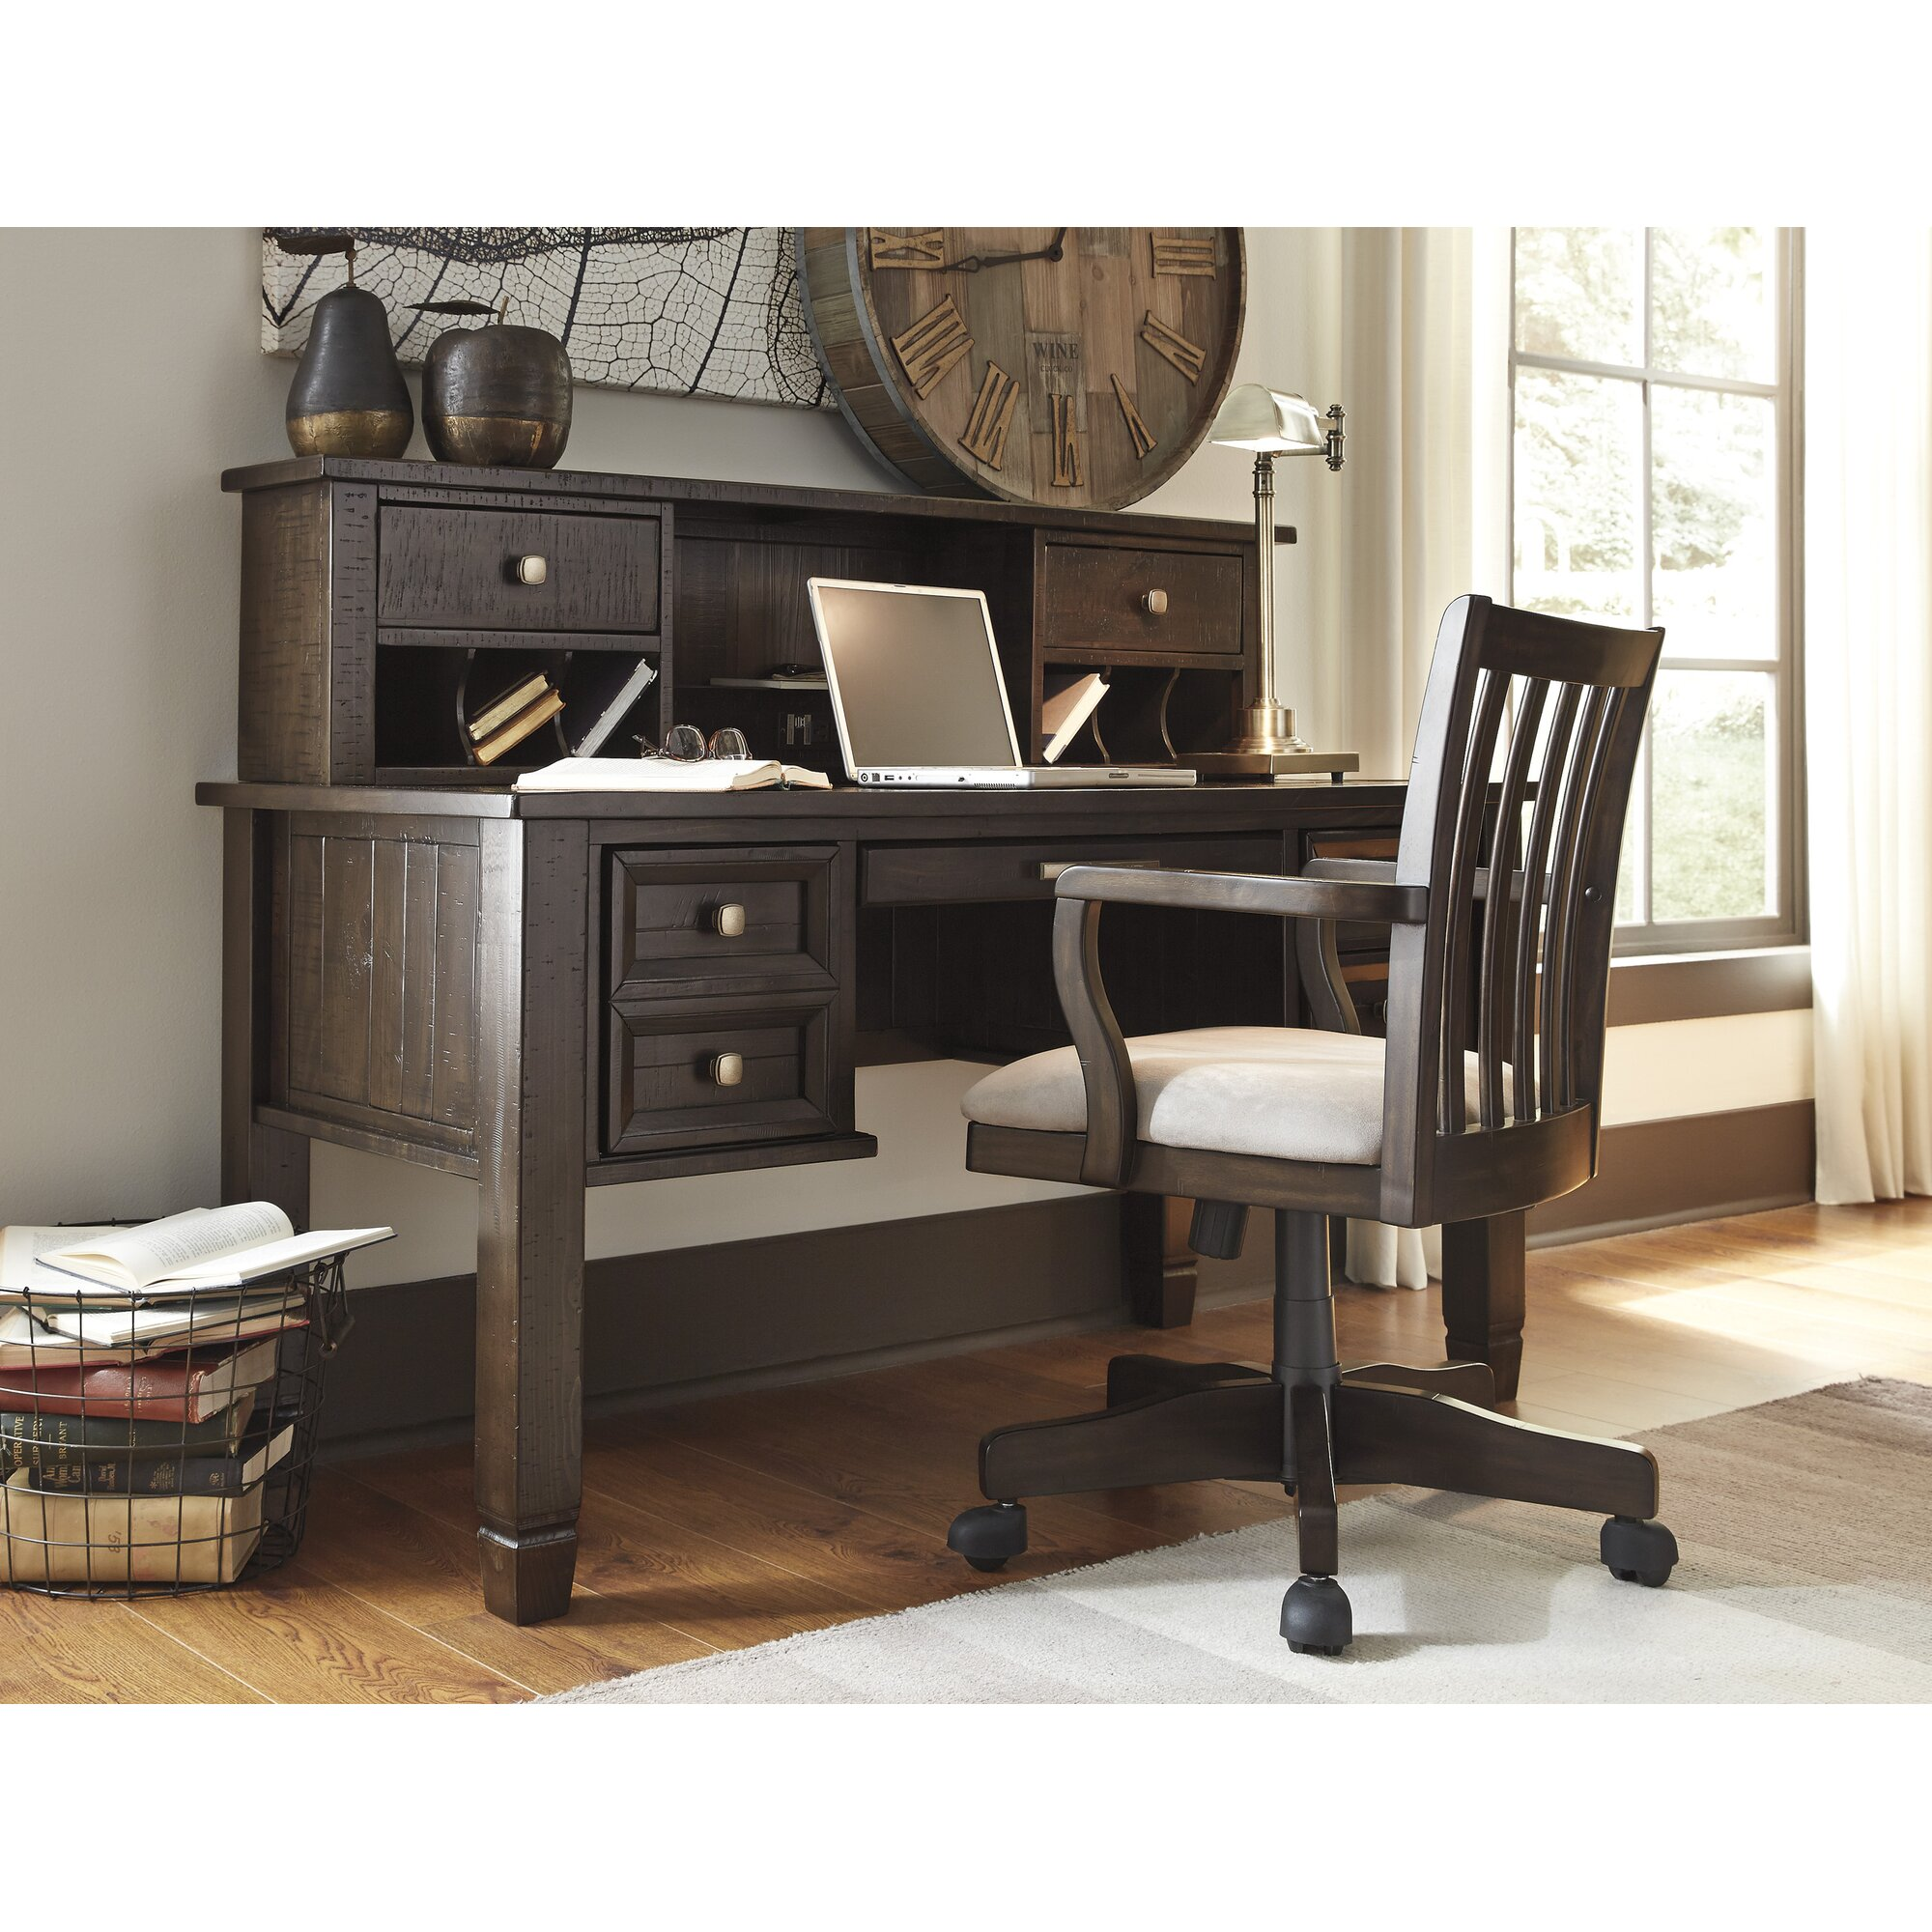 Laurel Foundry Modern Farmhouse Giroflee Writing Desk and Huth